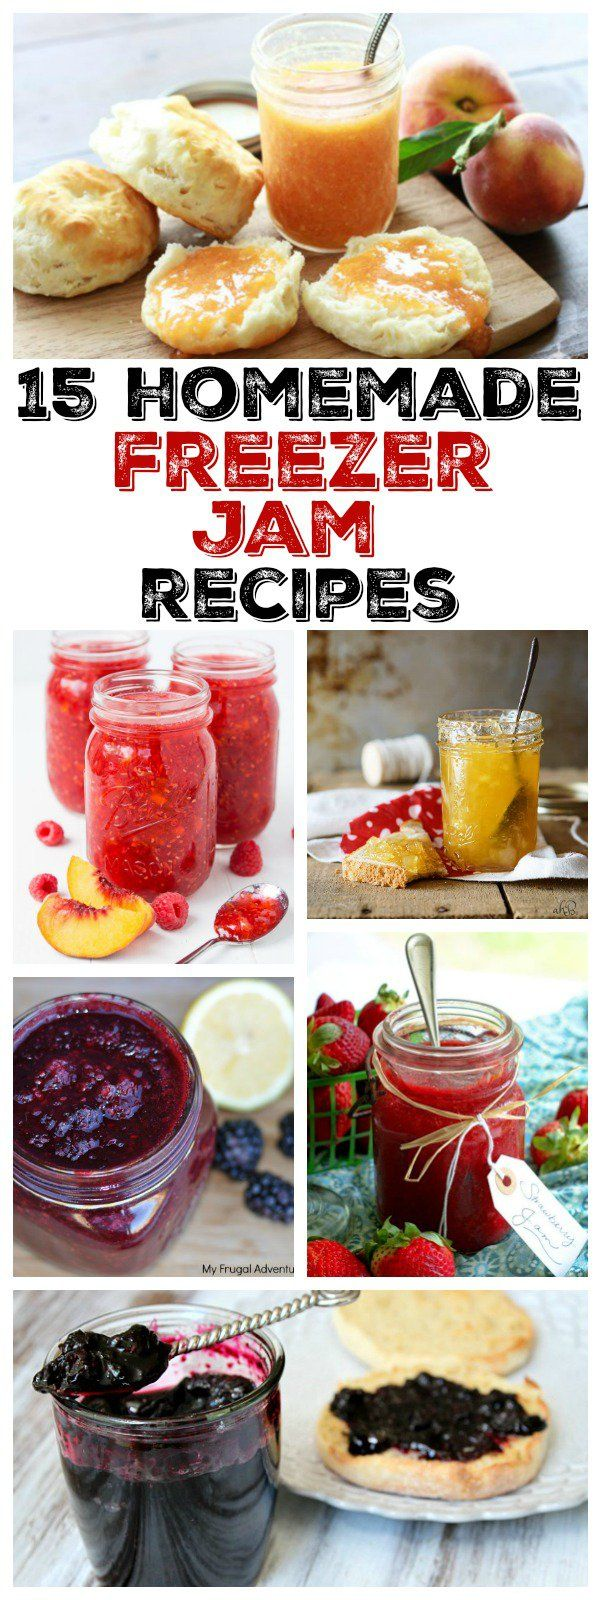 15 Easy Freezer or Refrigerator Jam Recipes to Make at Home